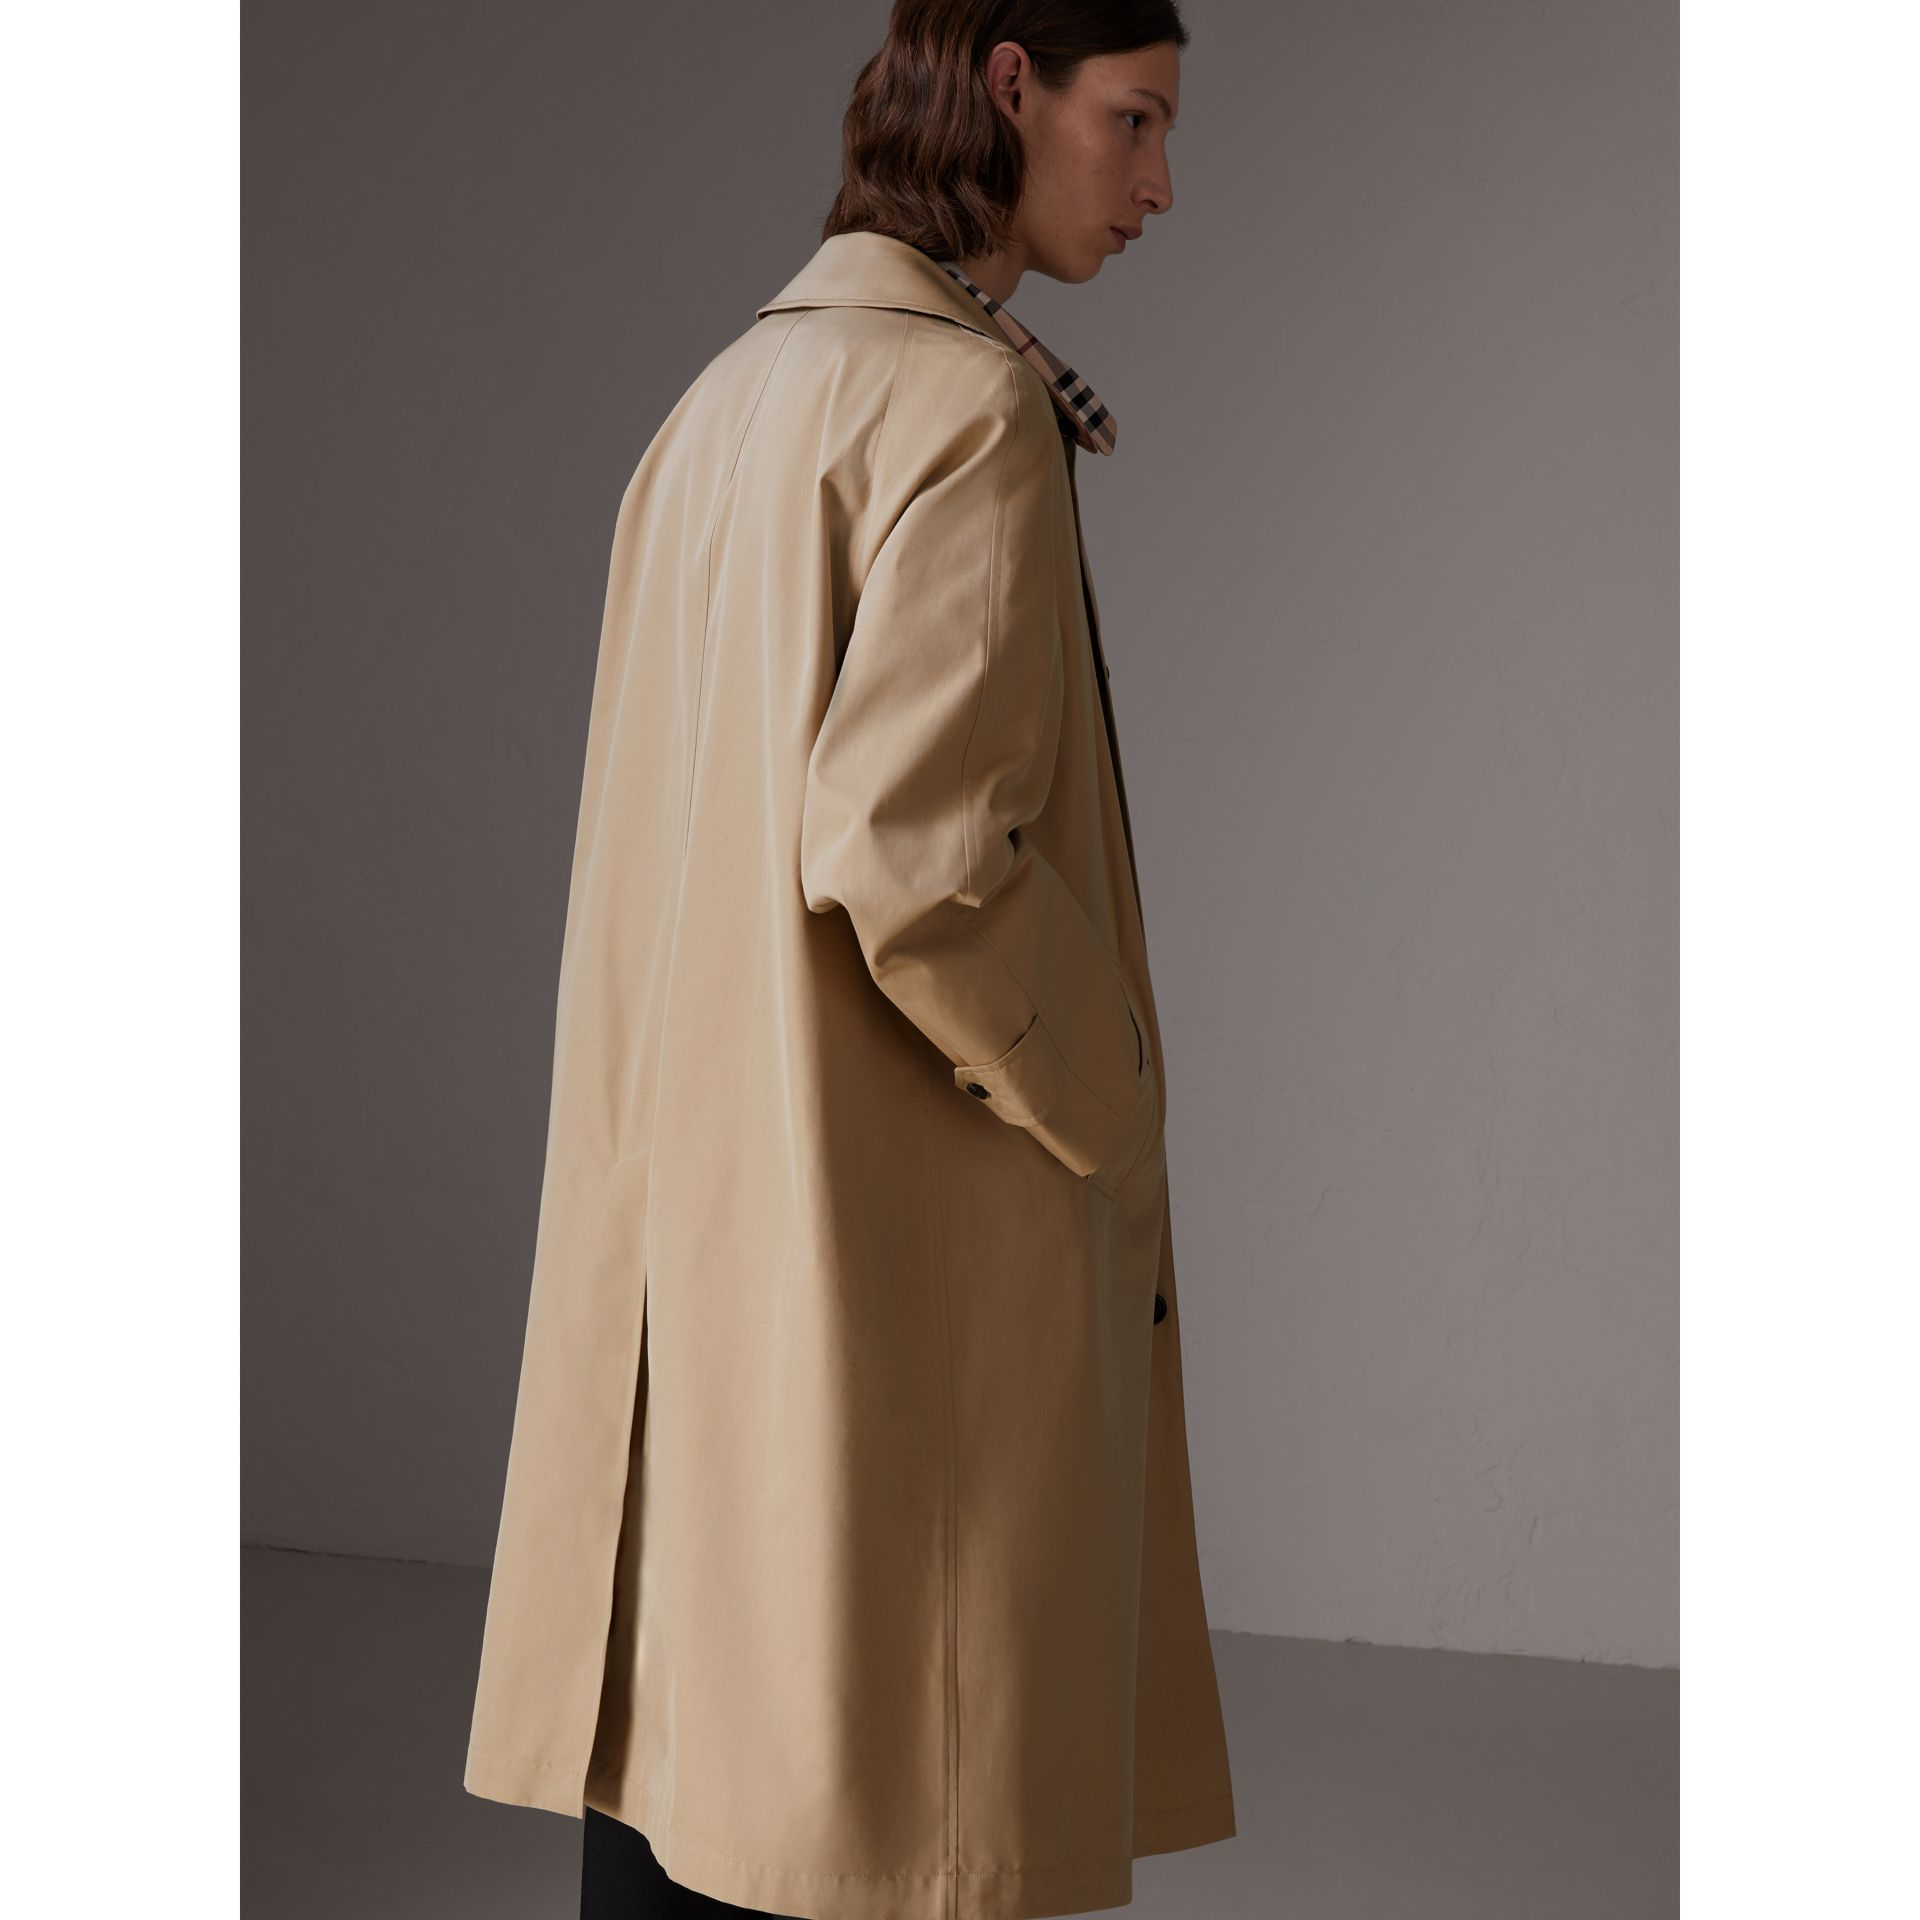 Gosha x Burberry Reconstructed Car Coat in Honey | Burberry Australia - gallery image 7